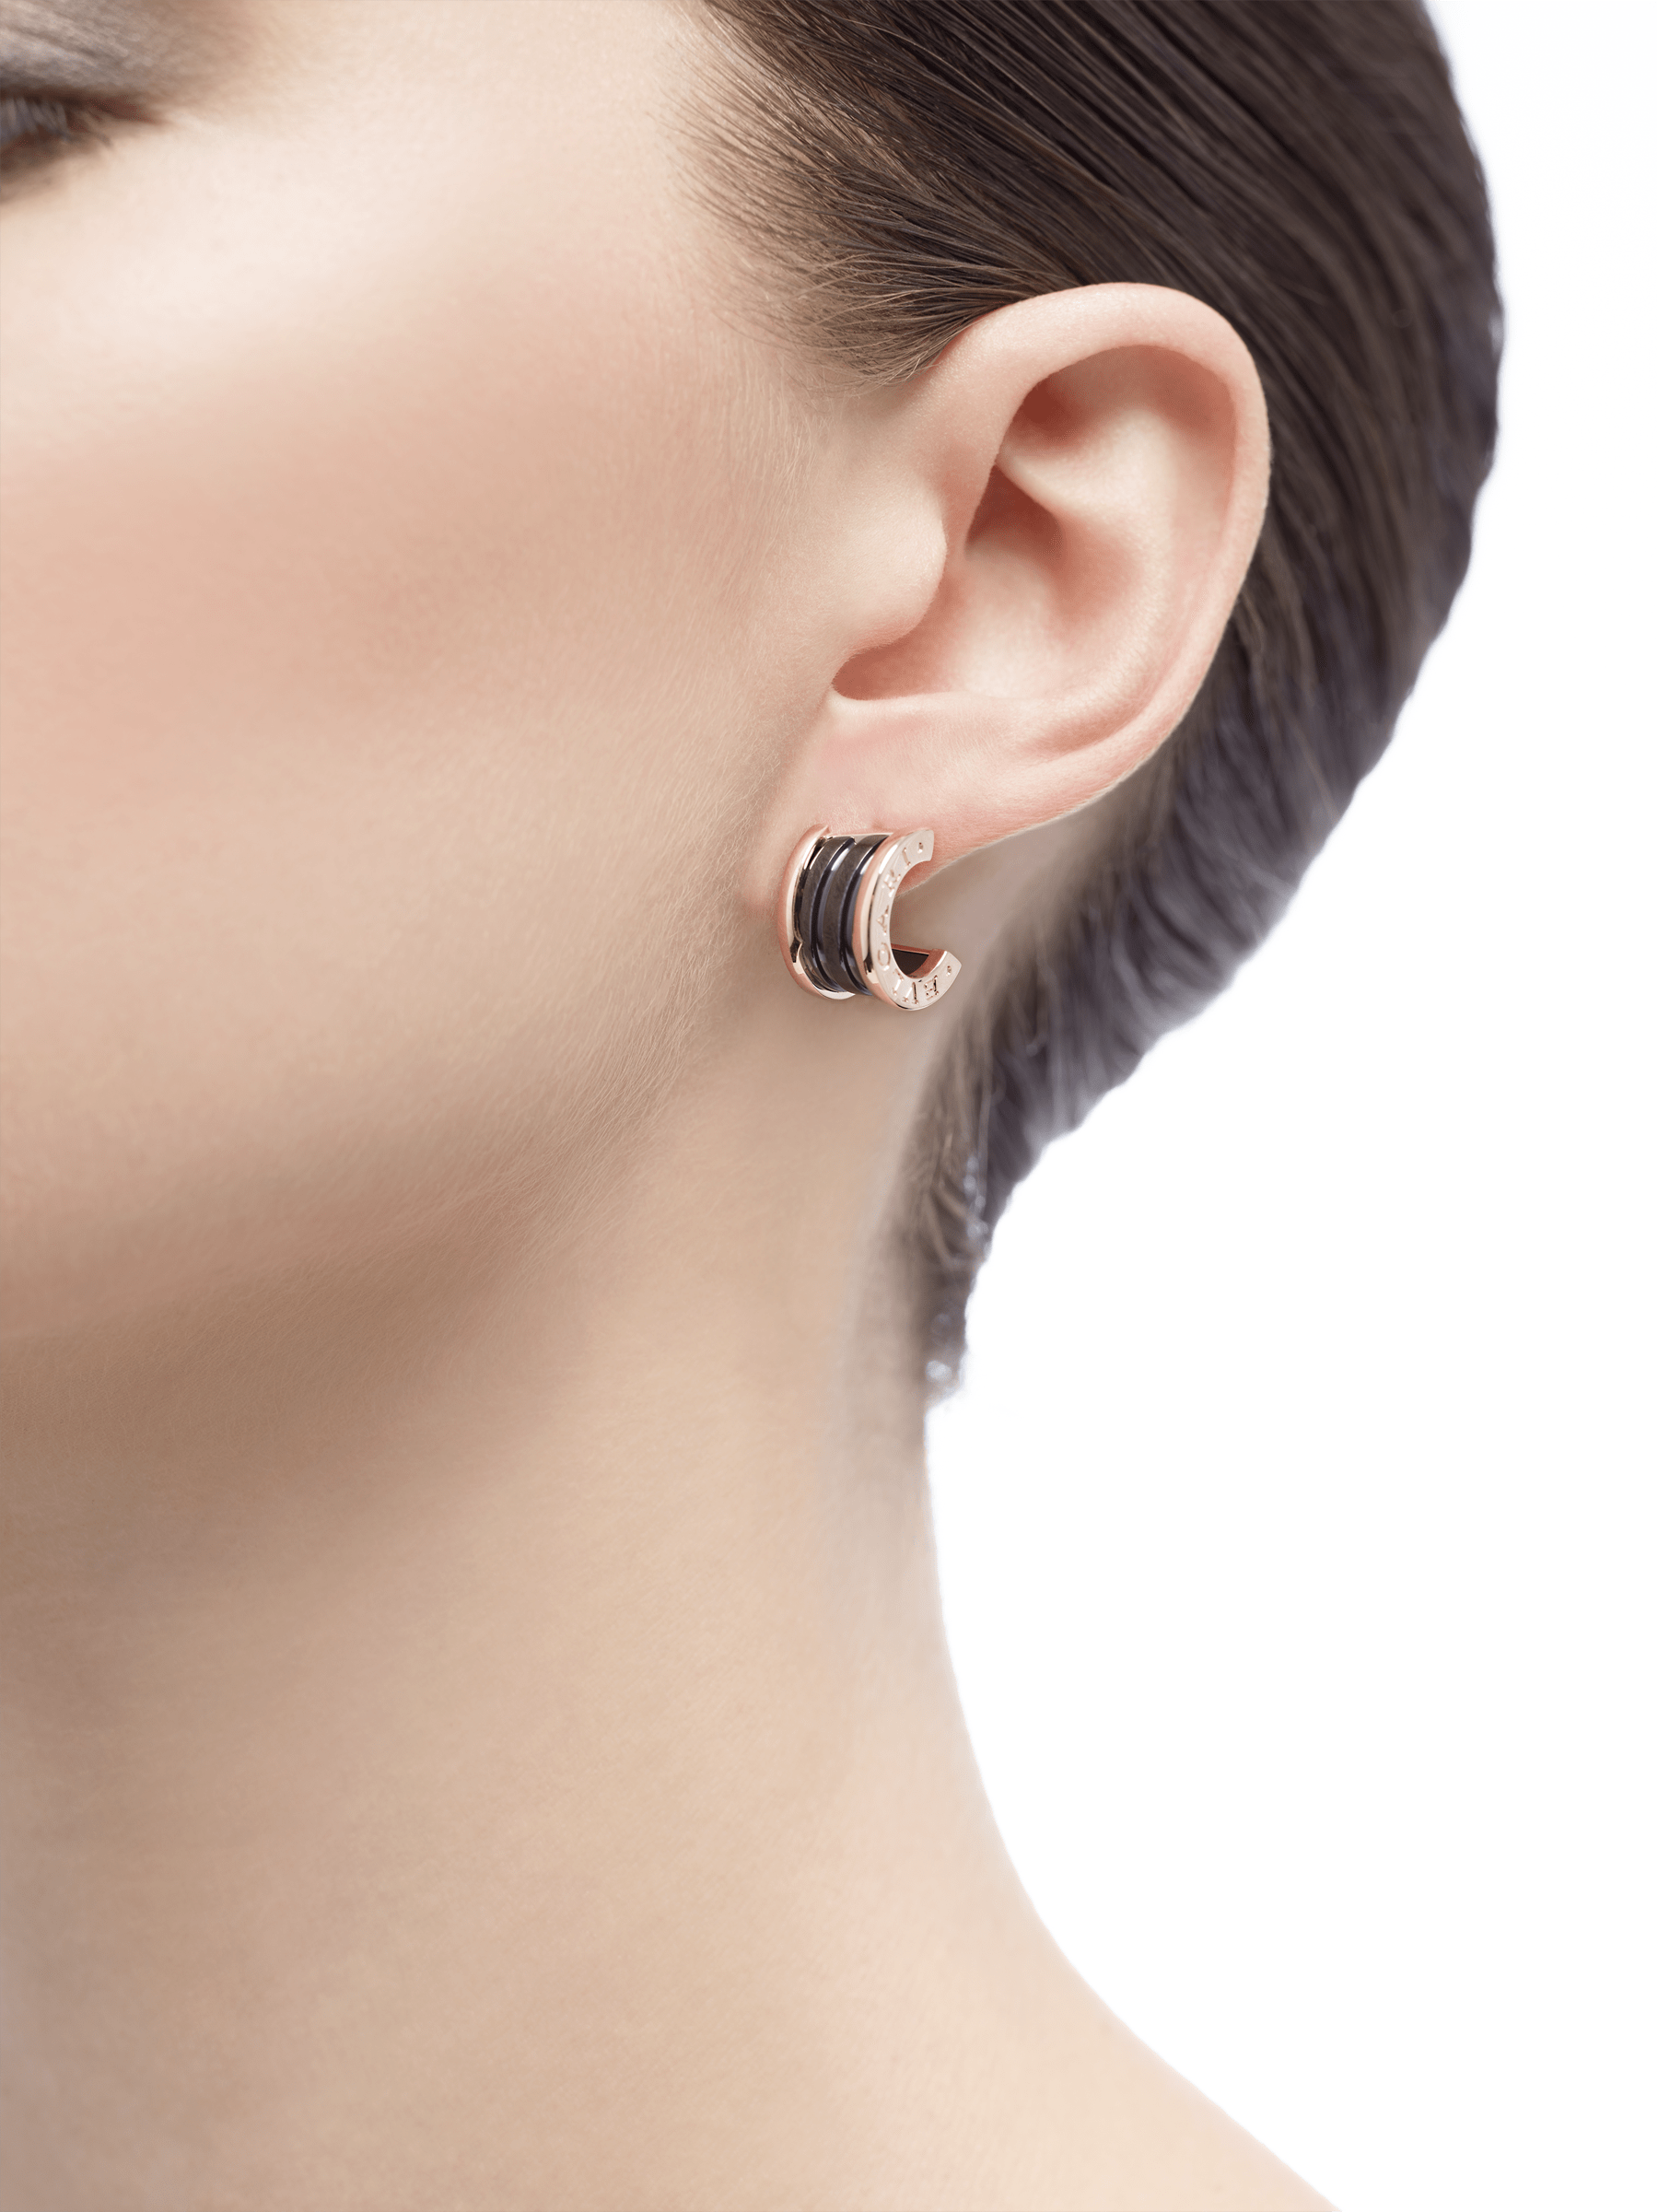 B.zero1 earrings in 18kt rose gold and black ceramic. 347405 image 3